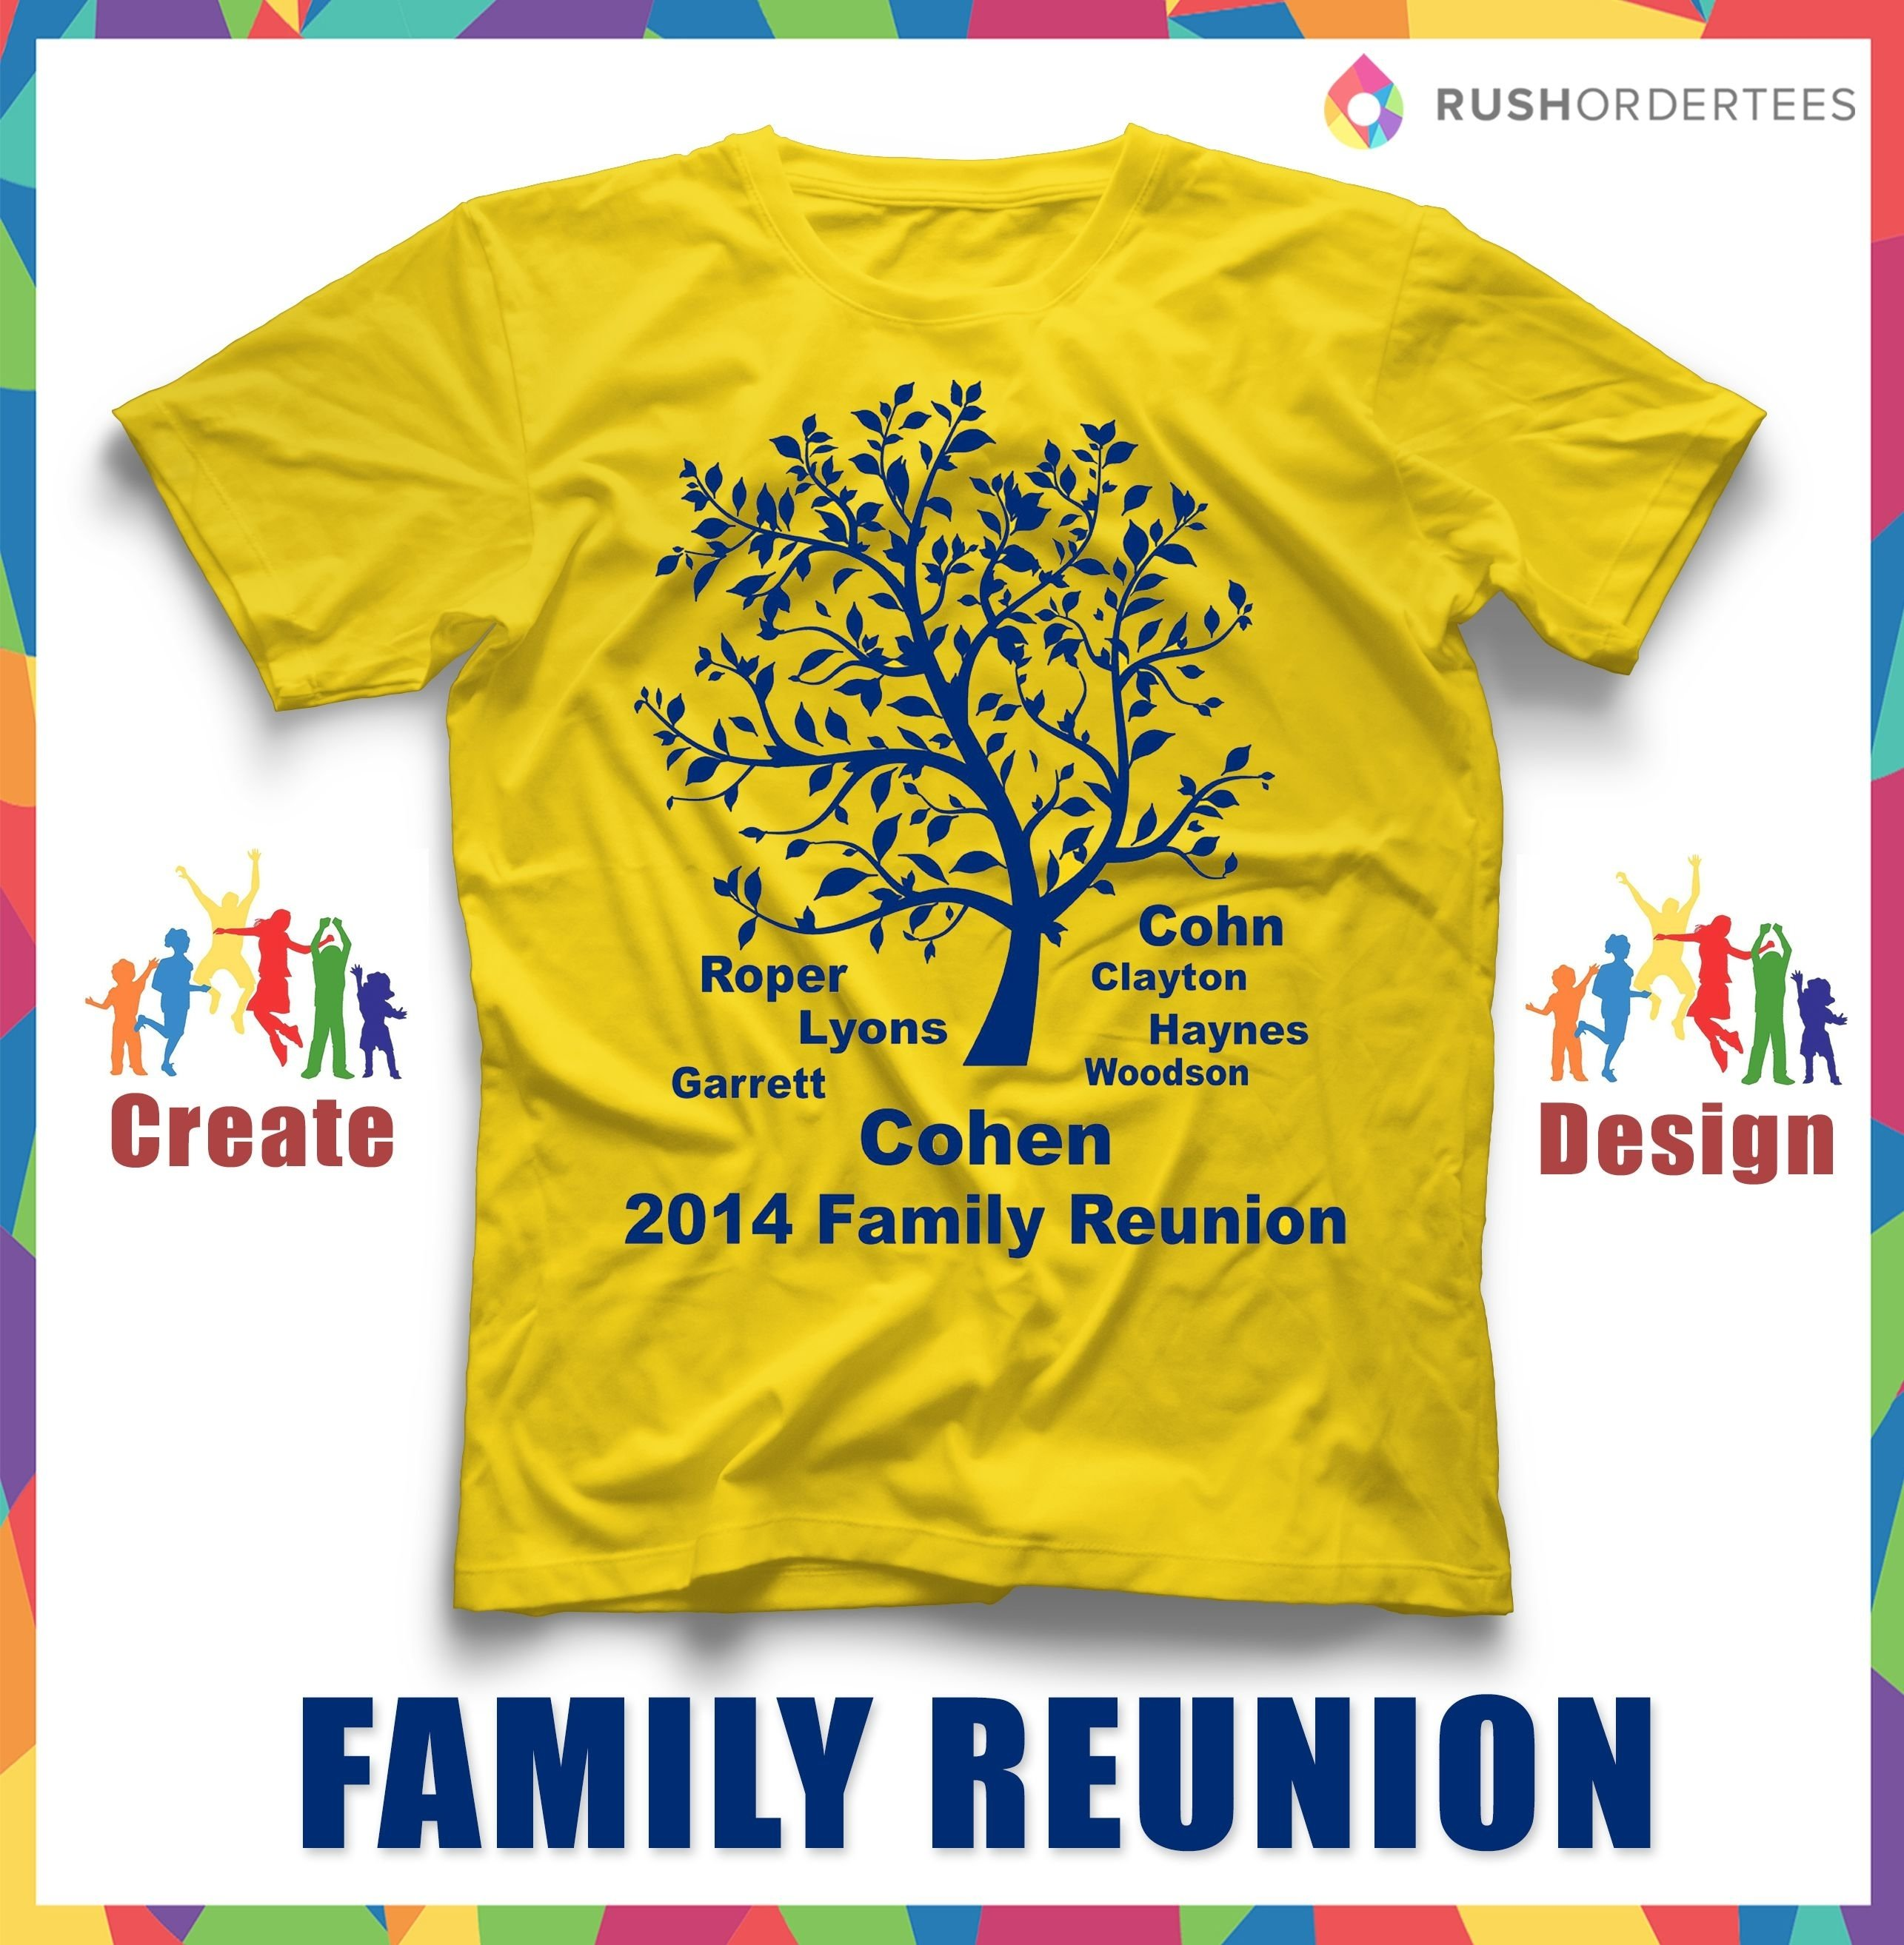 10 Most Popular Family Reunion T Shirt Designs Ideas family reunion t shirt ideas create your custom family reunion t 4 2021